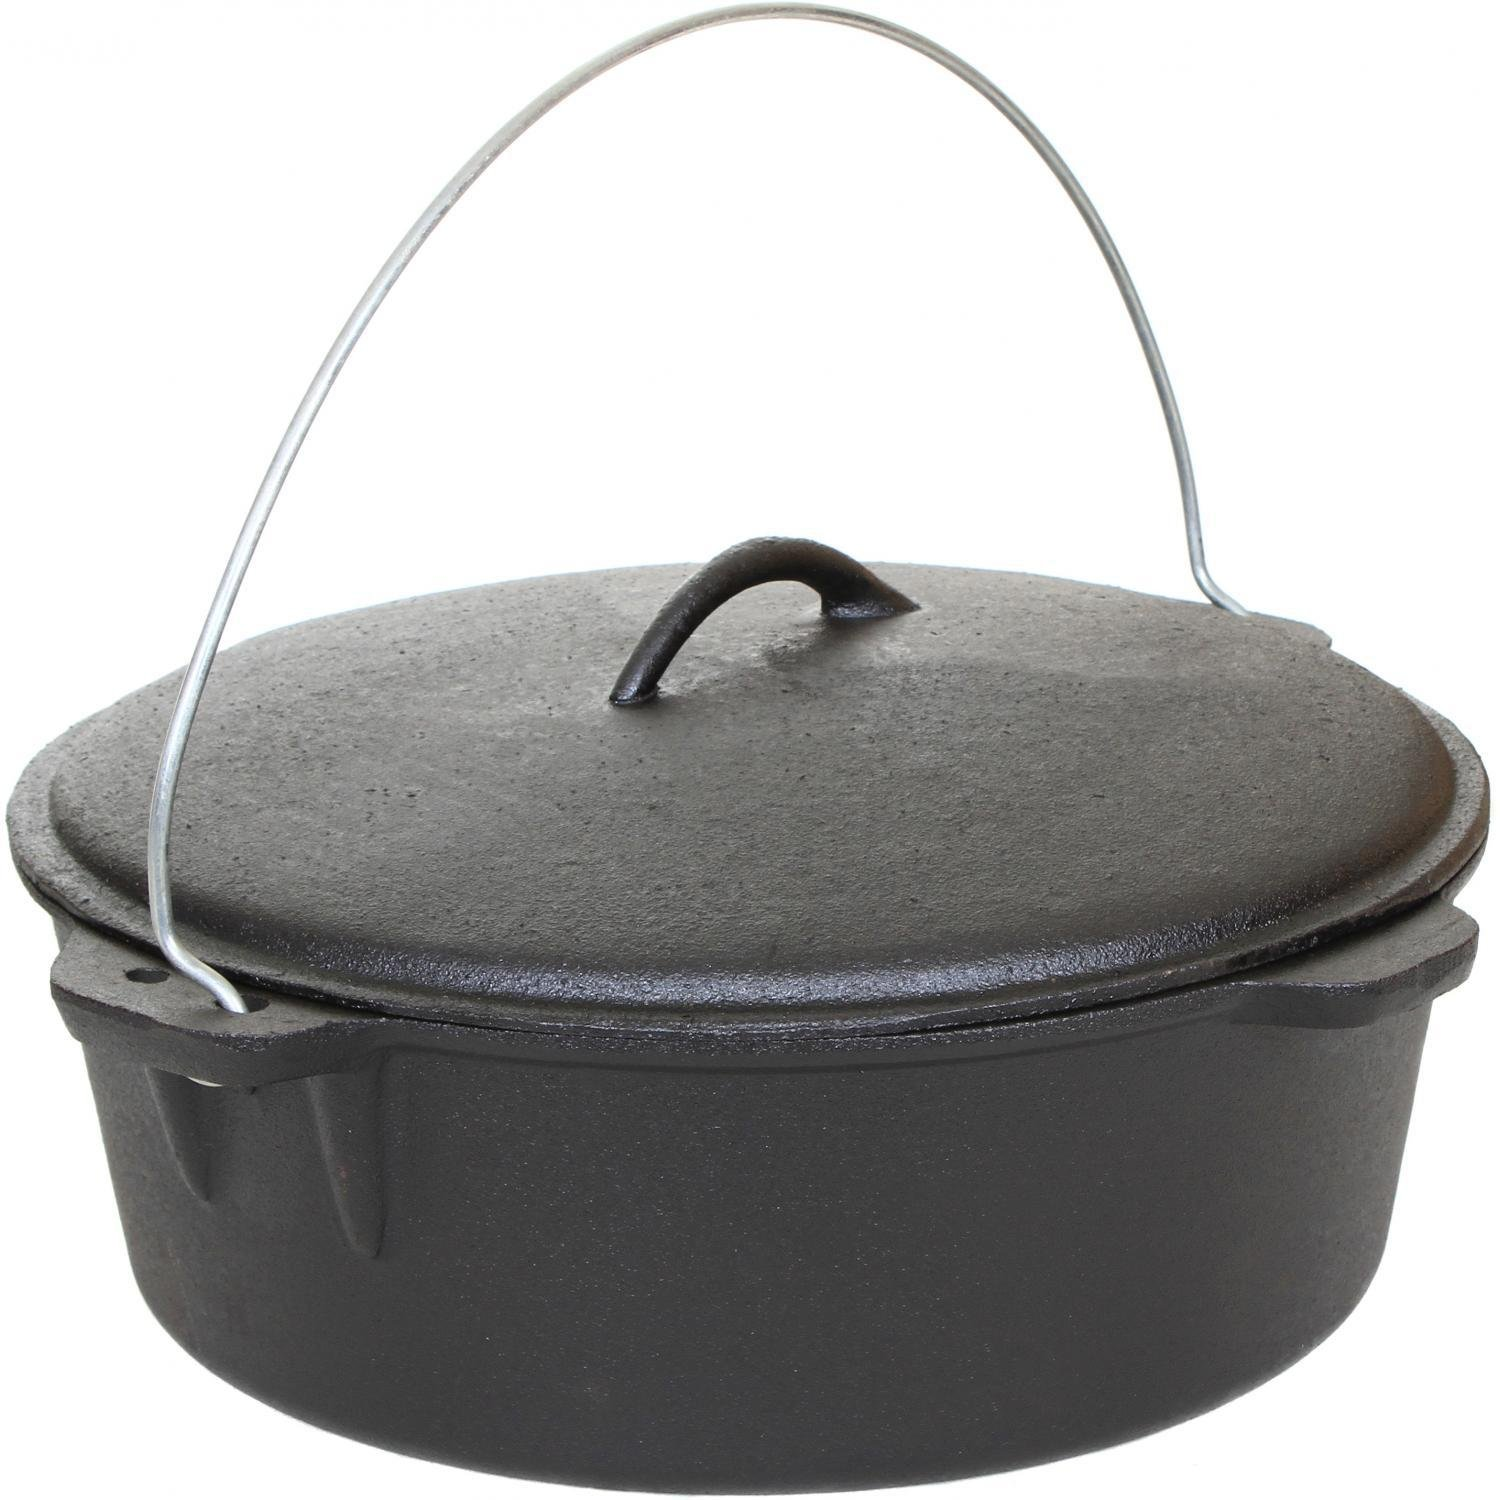 Cajun Cookware 12-quart Seasoned Cast Iron Dutch Oven - Gl10489s